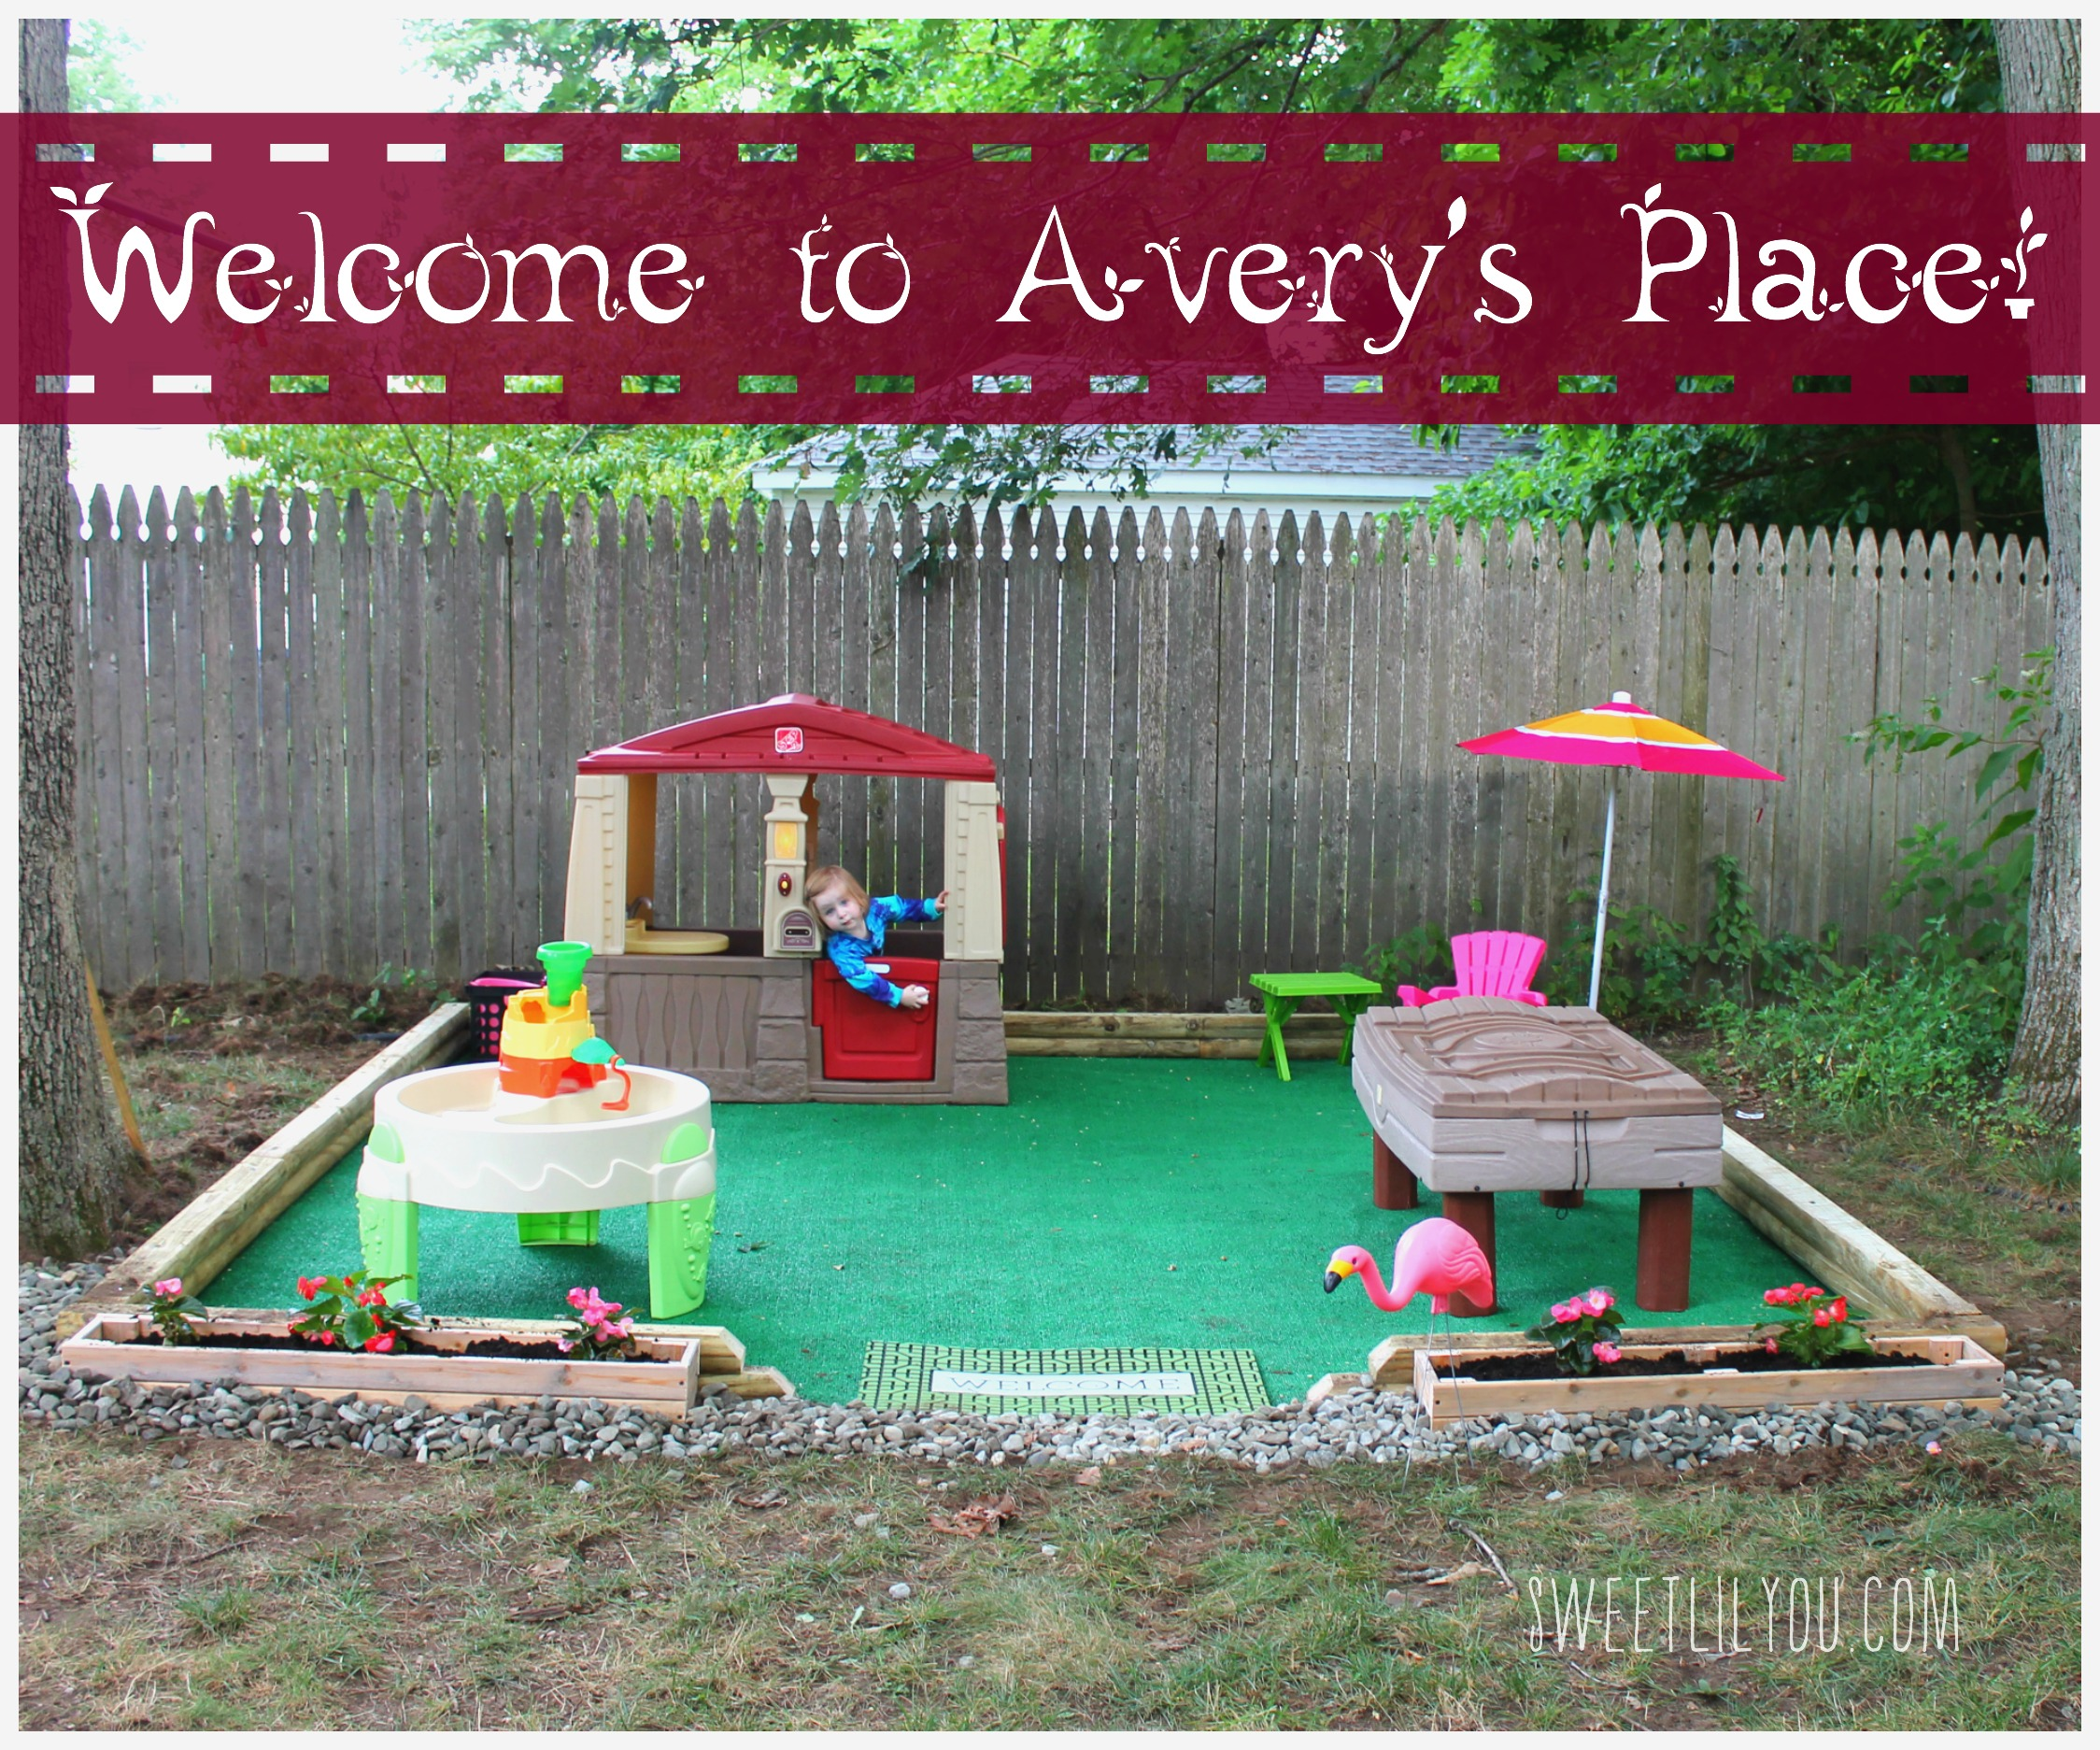 Diy outdoor play space avery 39 s place sweet lil you for Avery house